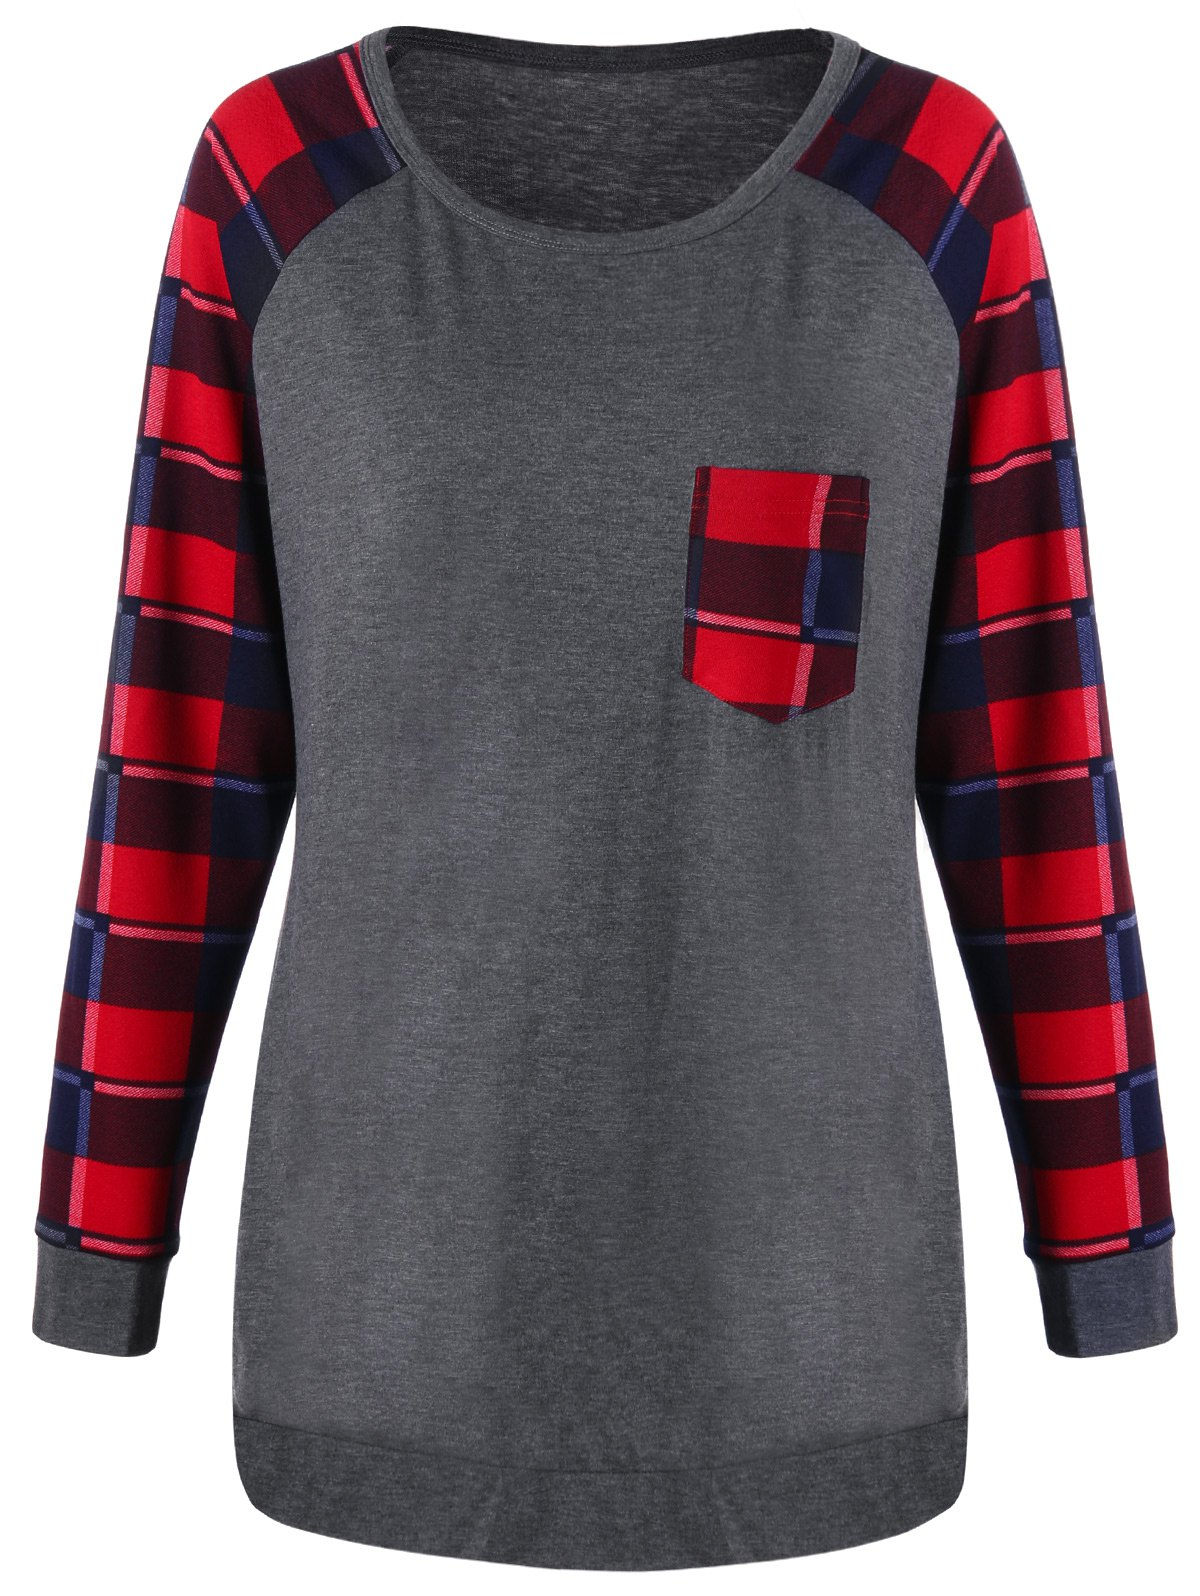 Raglan Sleeve Plus Size Pocket Plaid TopWOMEN<br><br>Size: 3XL; Color: GRAY; Material: Polyester,Spandex; Shirt Length: Long; Sleeve Length: Full; Collar: Round Neck; Style: Casual; Season: Fall,Spring; Pattern Type: Plaid; Weight: 0.3040kg; Package Contents: 1 x Top;